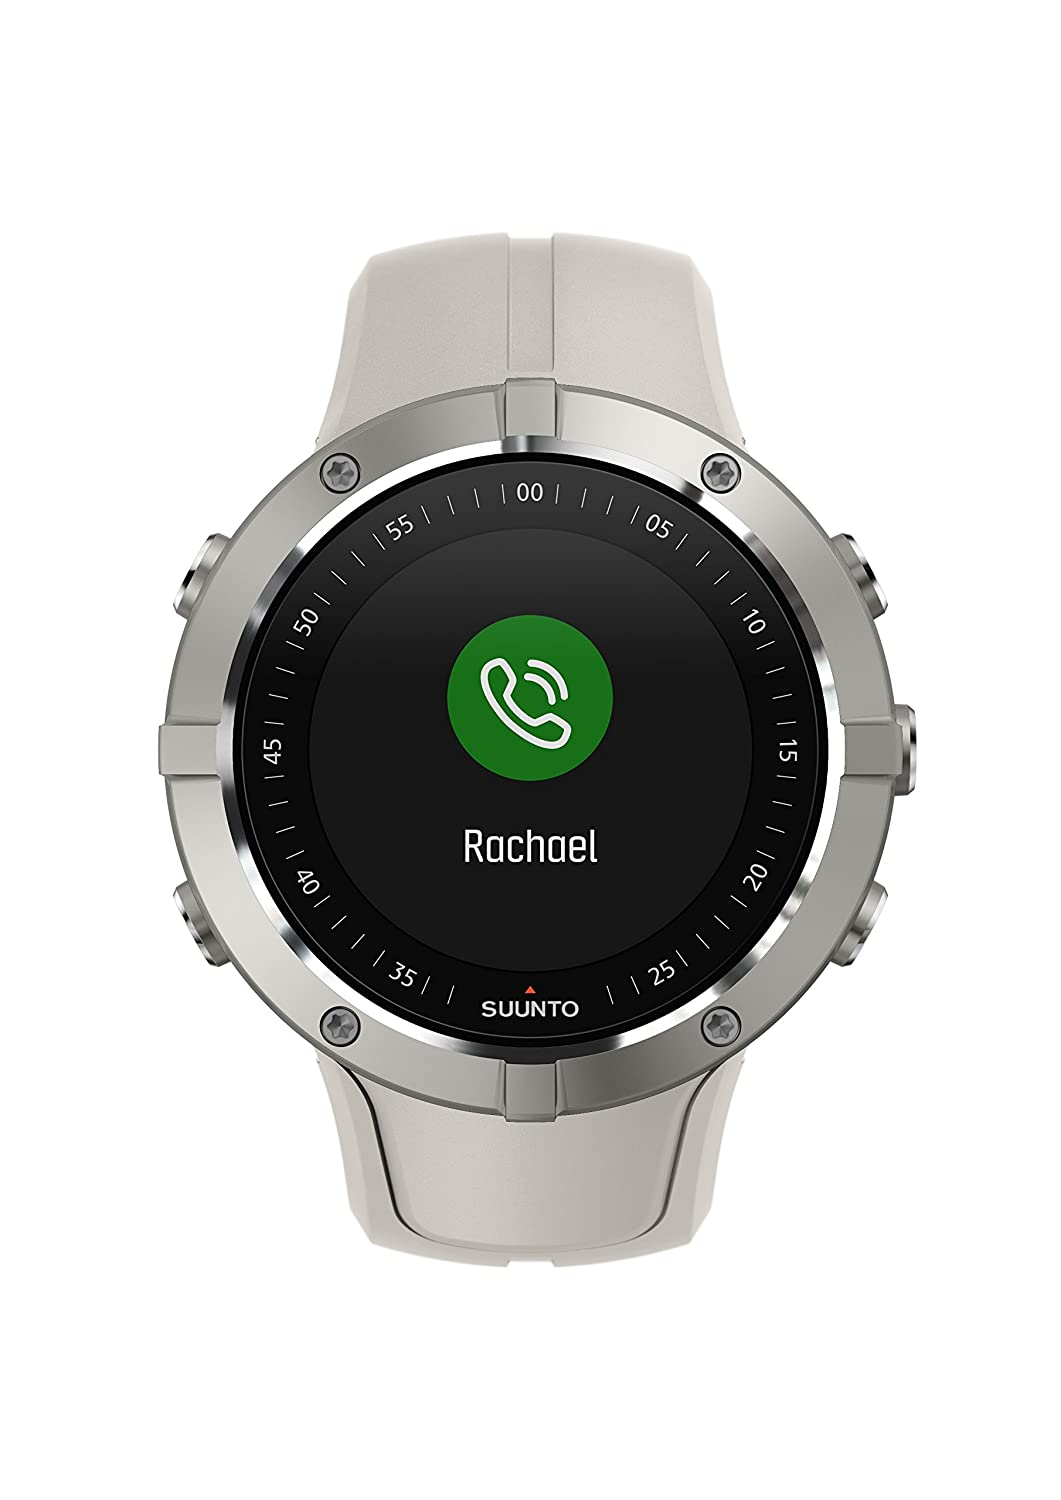 Amazon.com: Suunto Spartan Trainer Wrist HR Multisport GPS Watch (Sandstone): GPS & Navigation